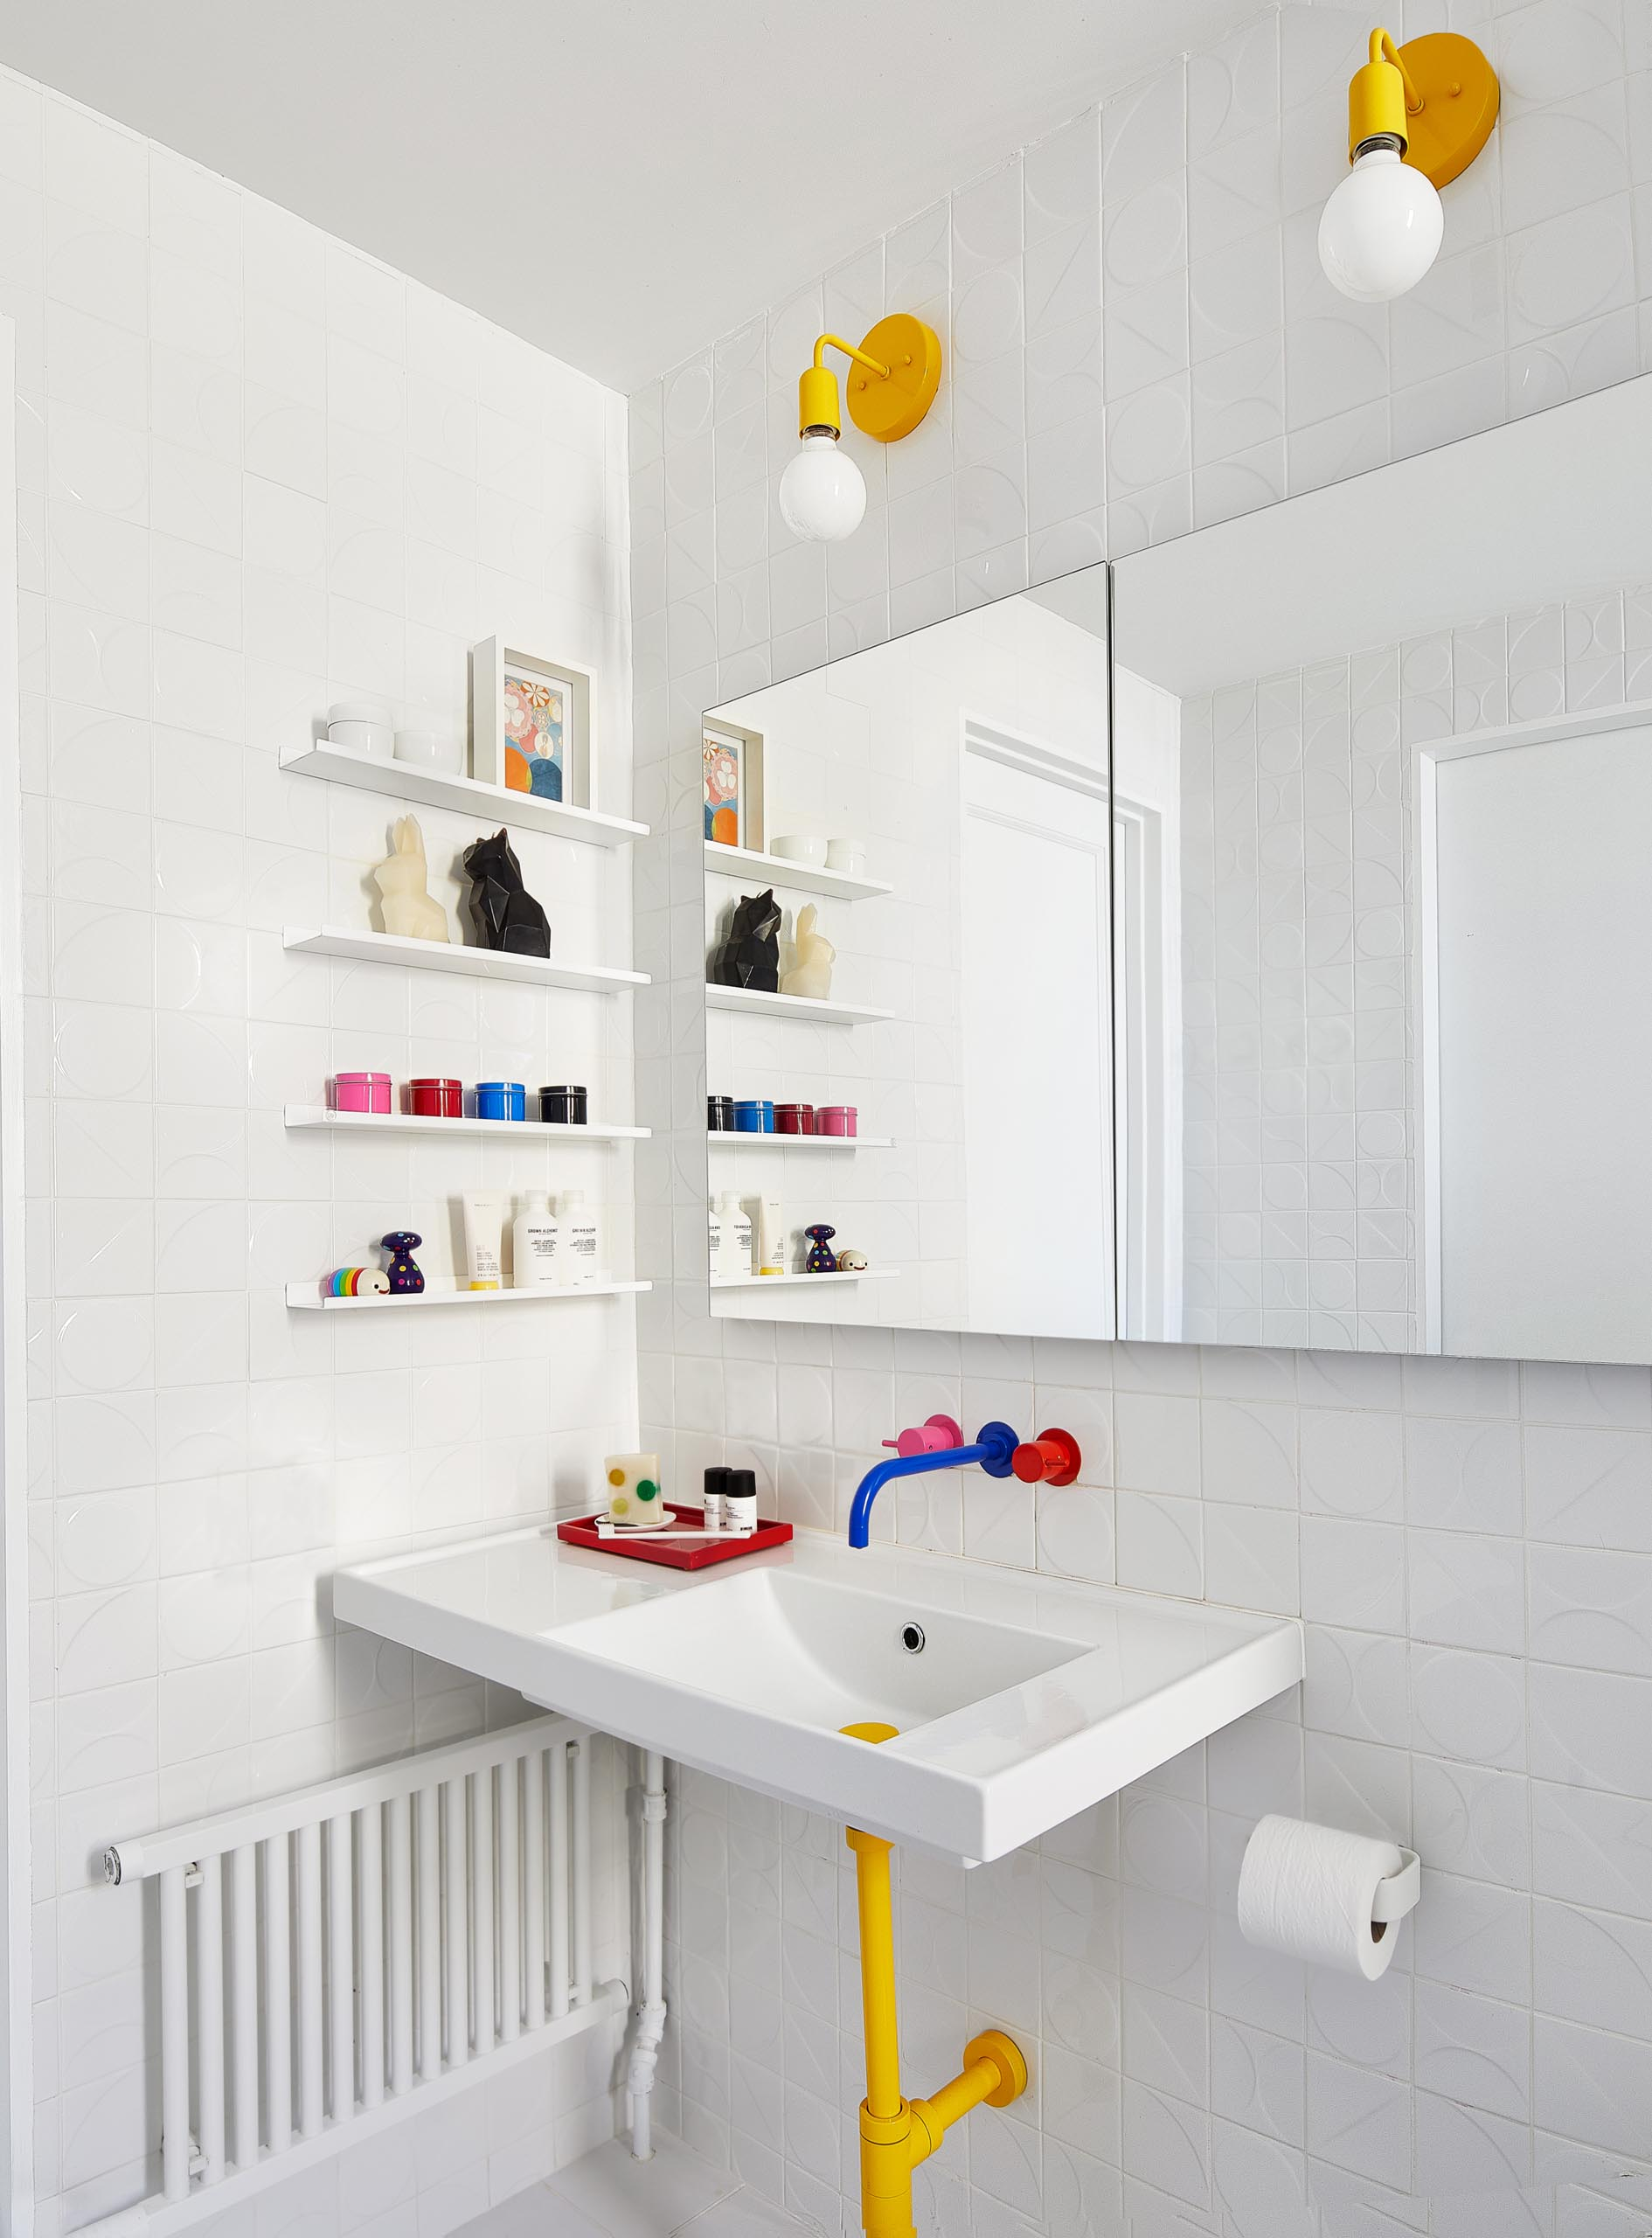 In this kids' bathroom, mix-and-match hot pink, yellow, and blue plumbing fixtures by VOLA join dimensional wall tiles by Kho Liang and yellow lighting fixtures from Barn Lighting.